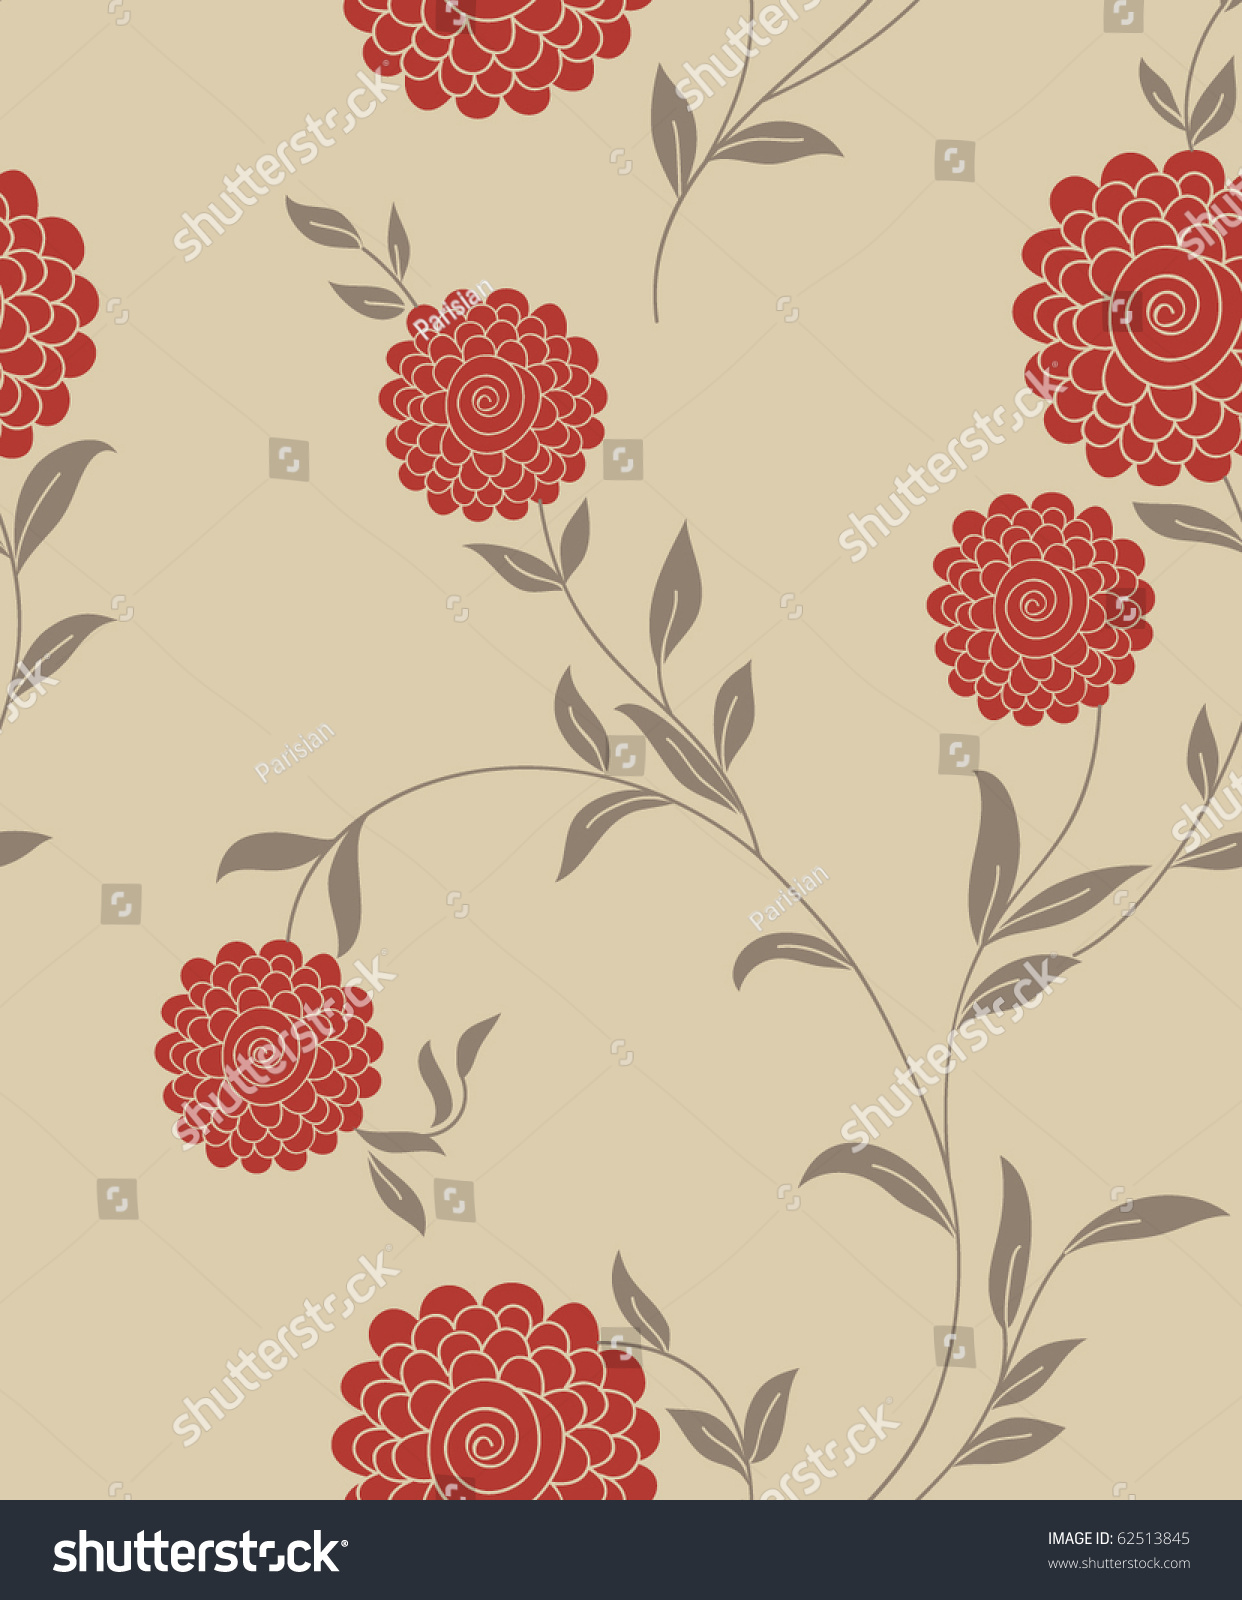 Floral Vintage Seamless Pattern Retro Wallpapers Stock Vector